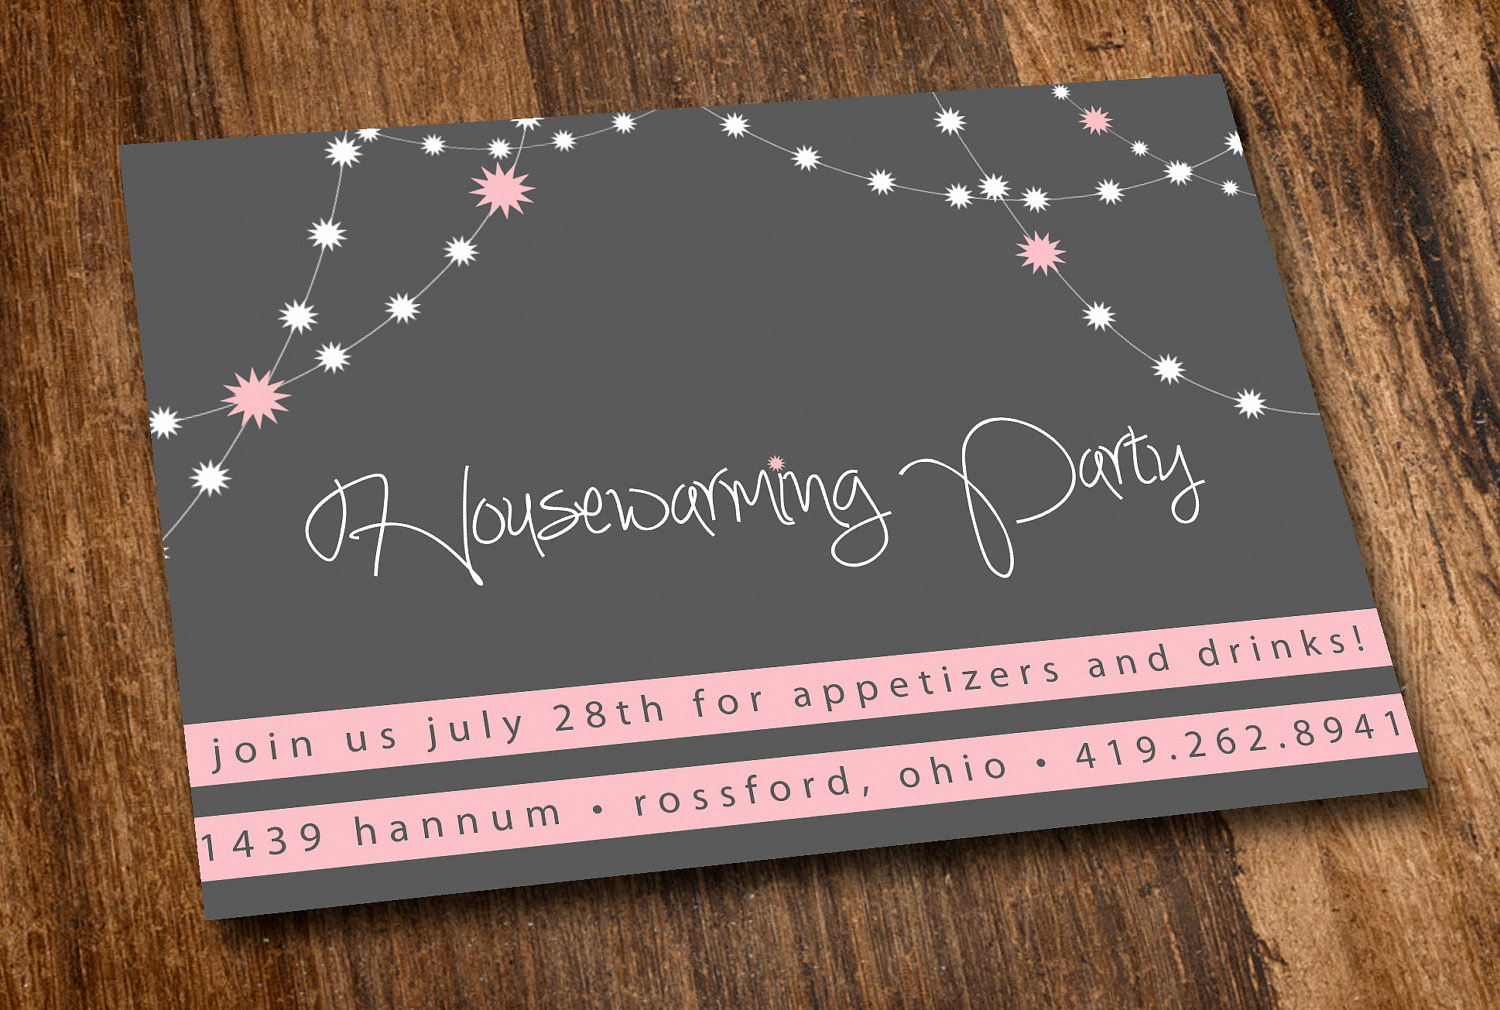 Housewarming Images for Invitation Awesome Printable Housewarming Invitation Pink Lights